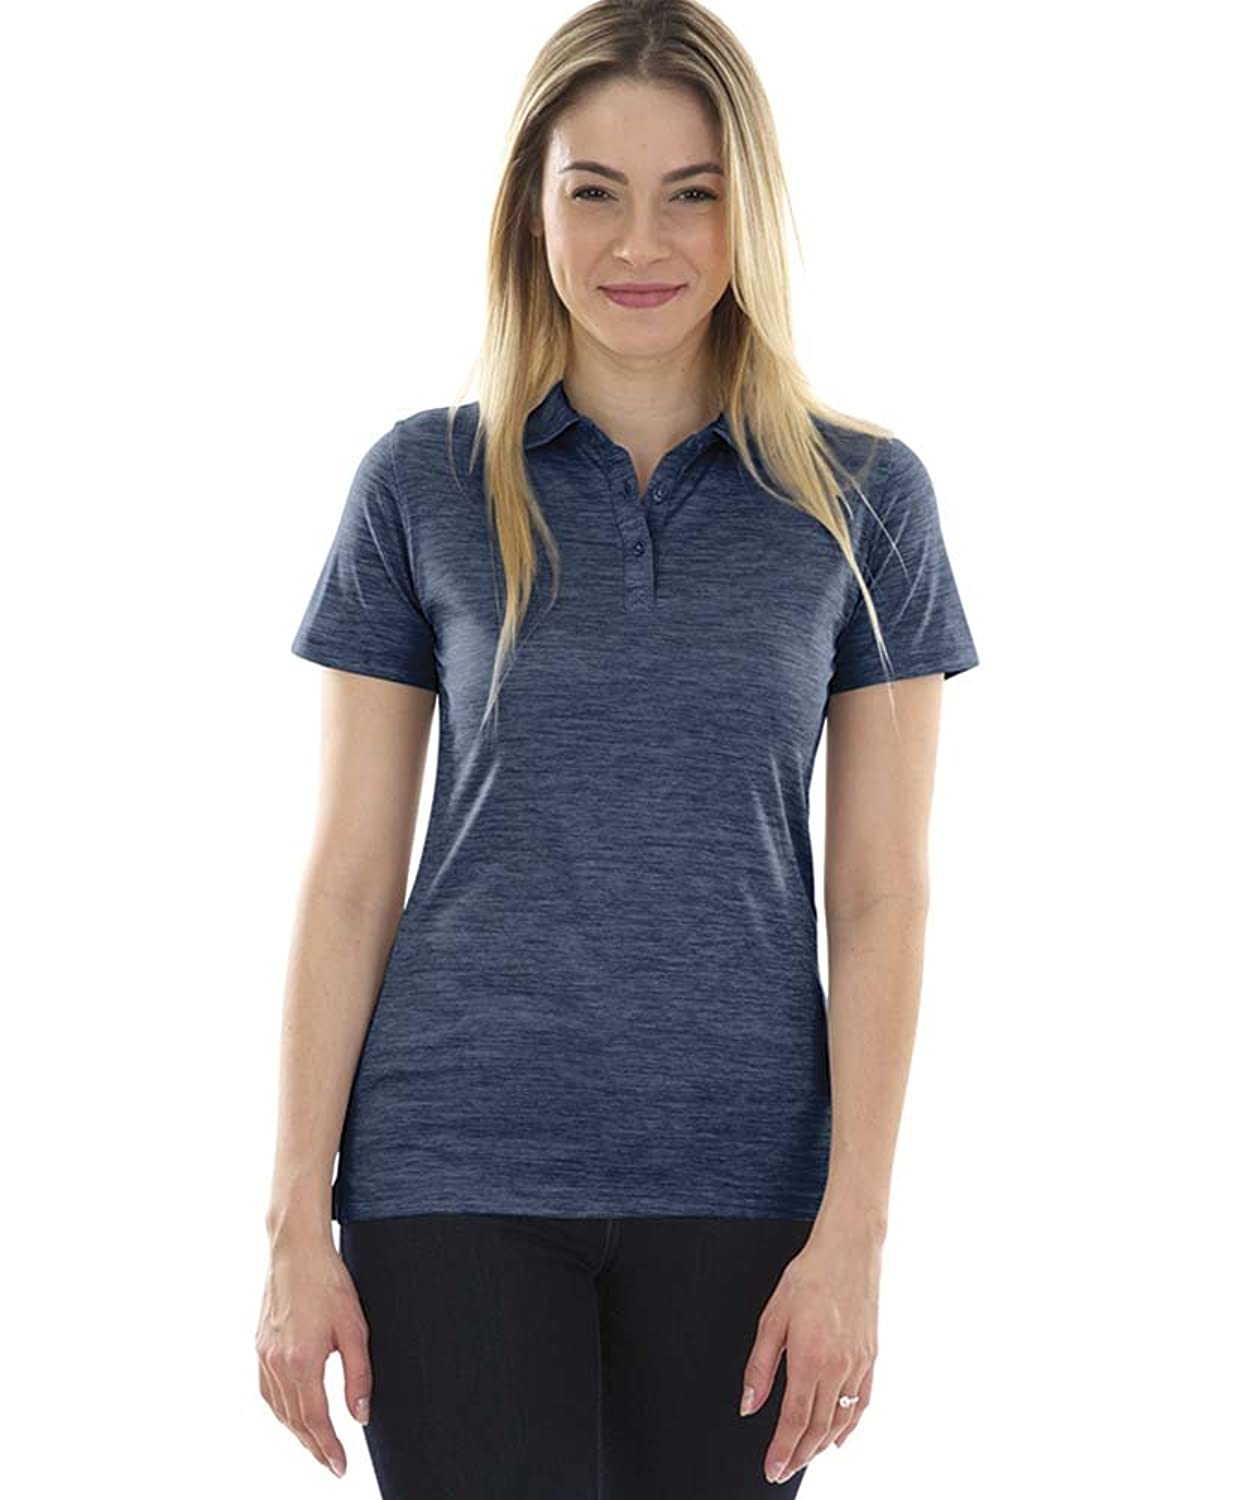 Space Dye Performance Polo Shirt (Women's) by Charles River Apparel